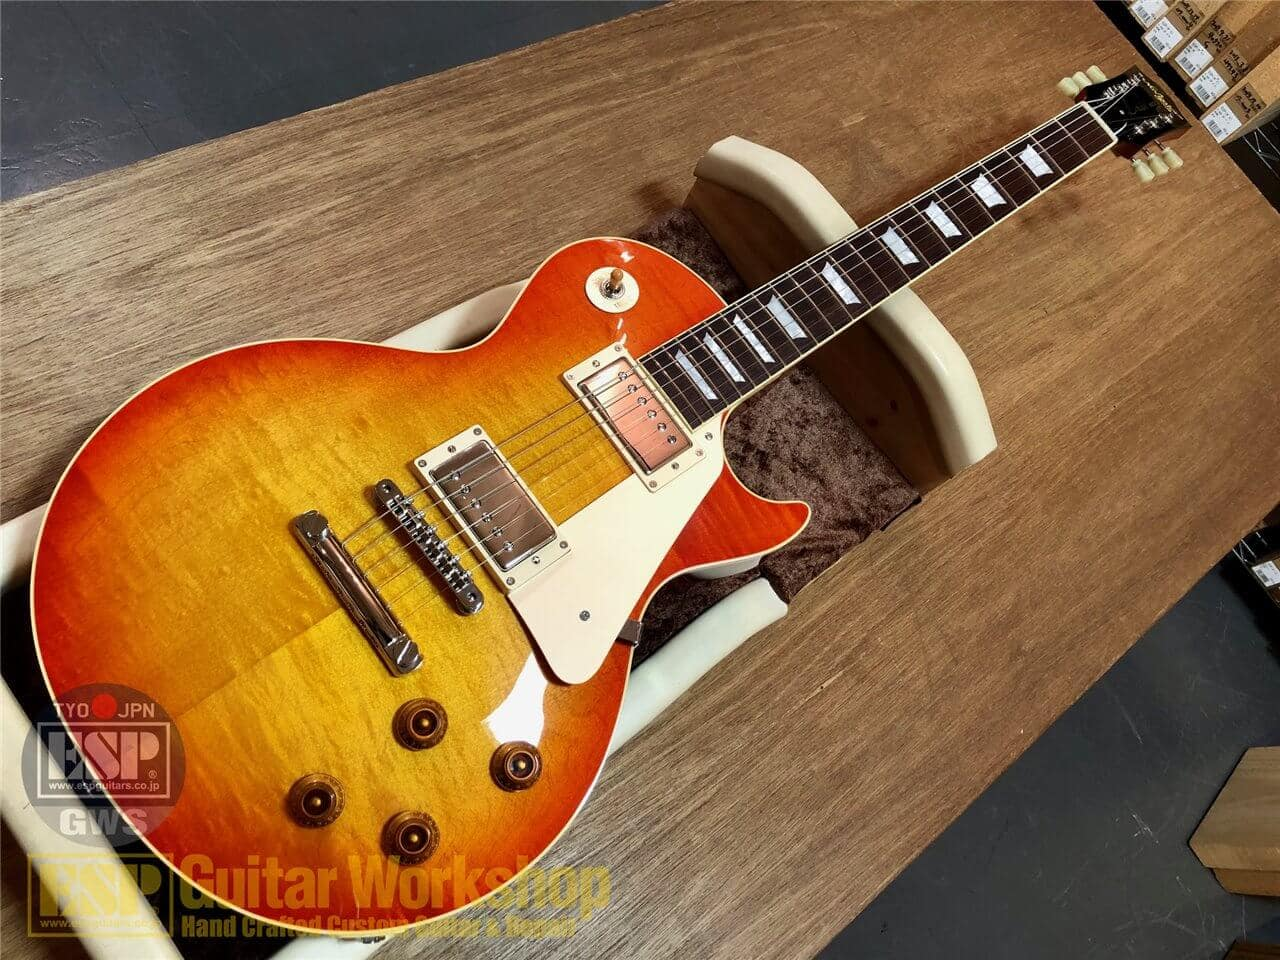 【即納可能】Navigator(ナビゲーター) N-LP-STD / Cherry Sunburst GWS